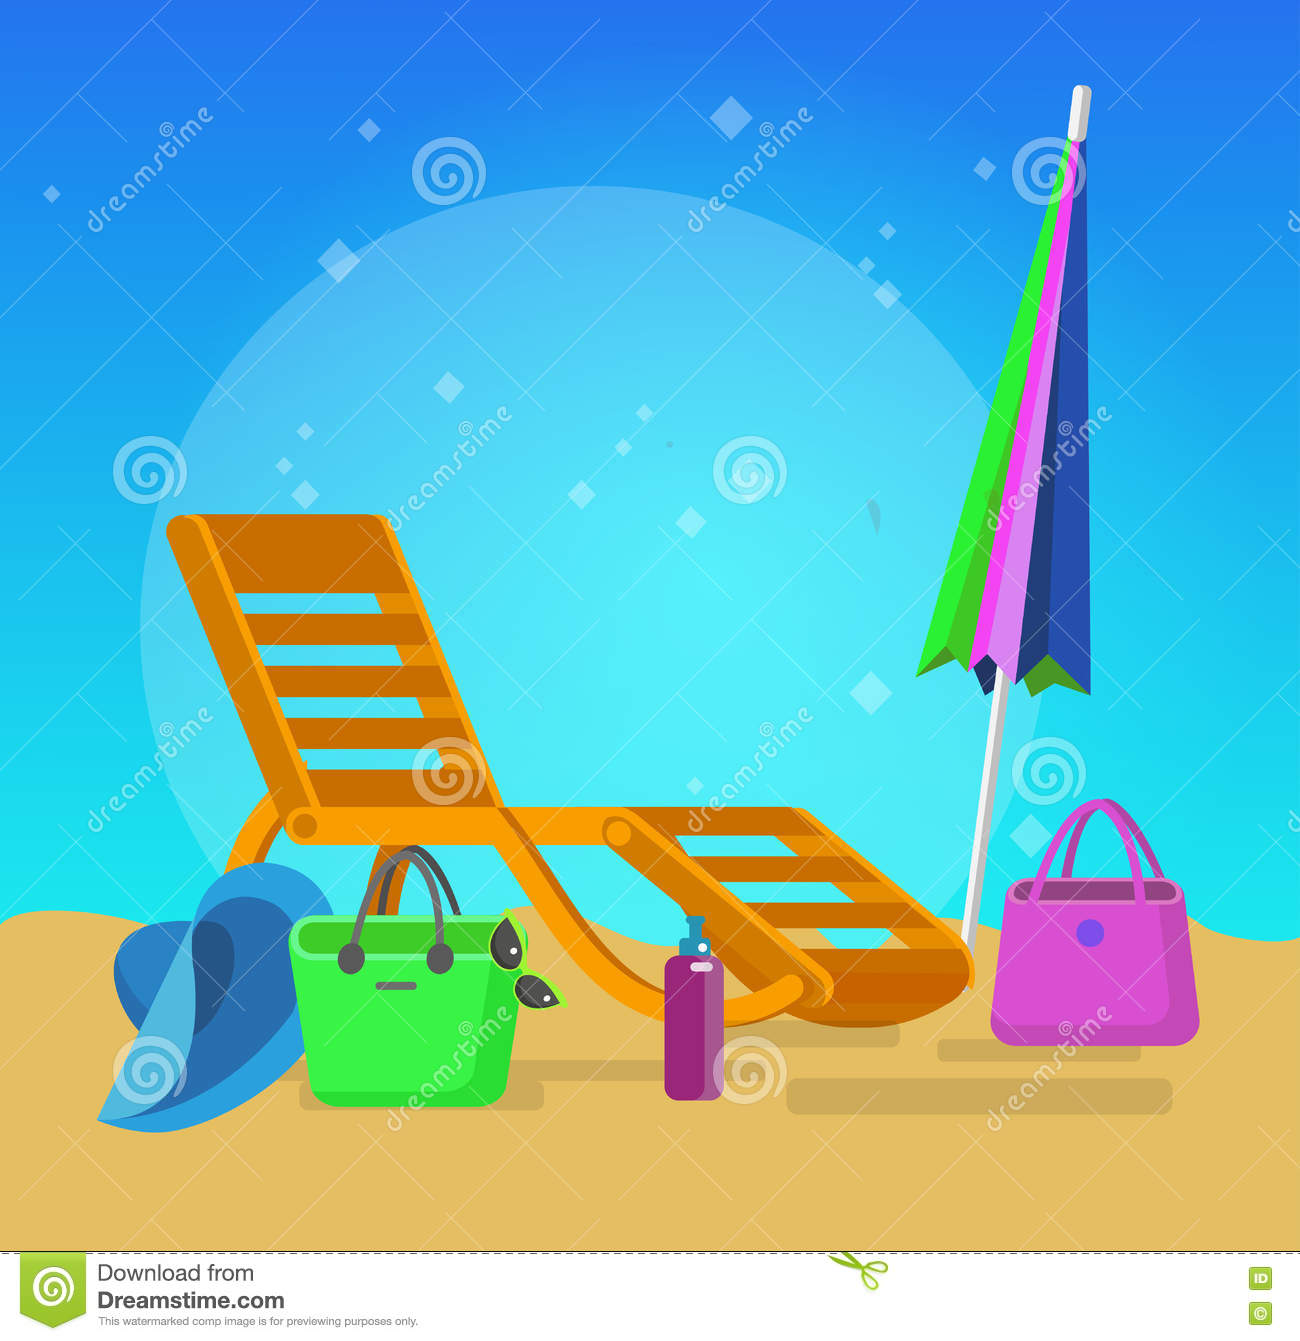 Wooden beach chaise longue stock vector image 71643895 for Beach chaise longue